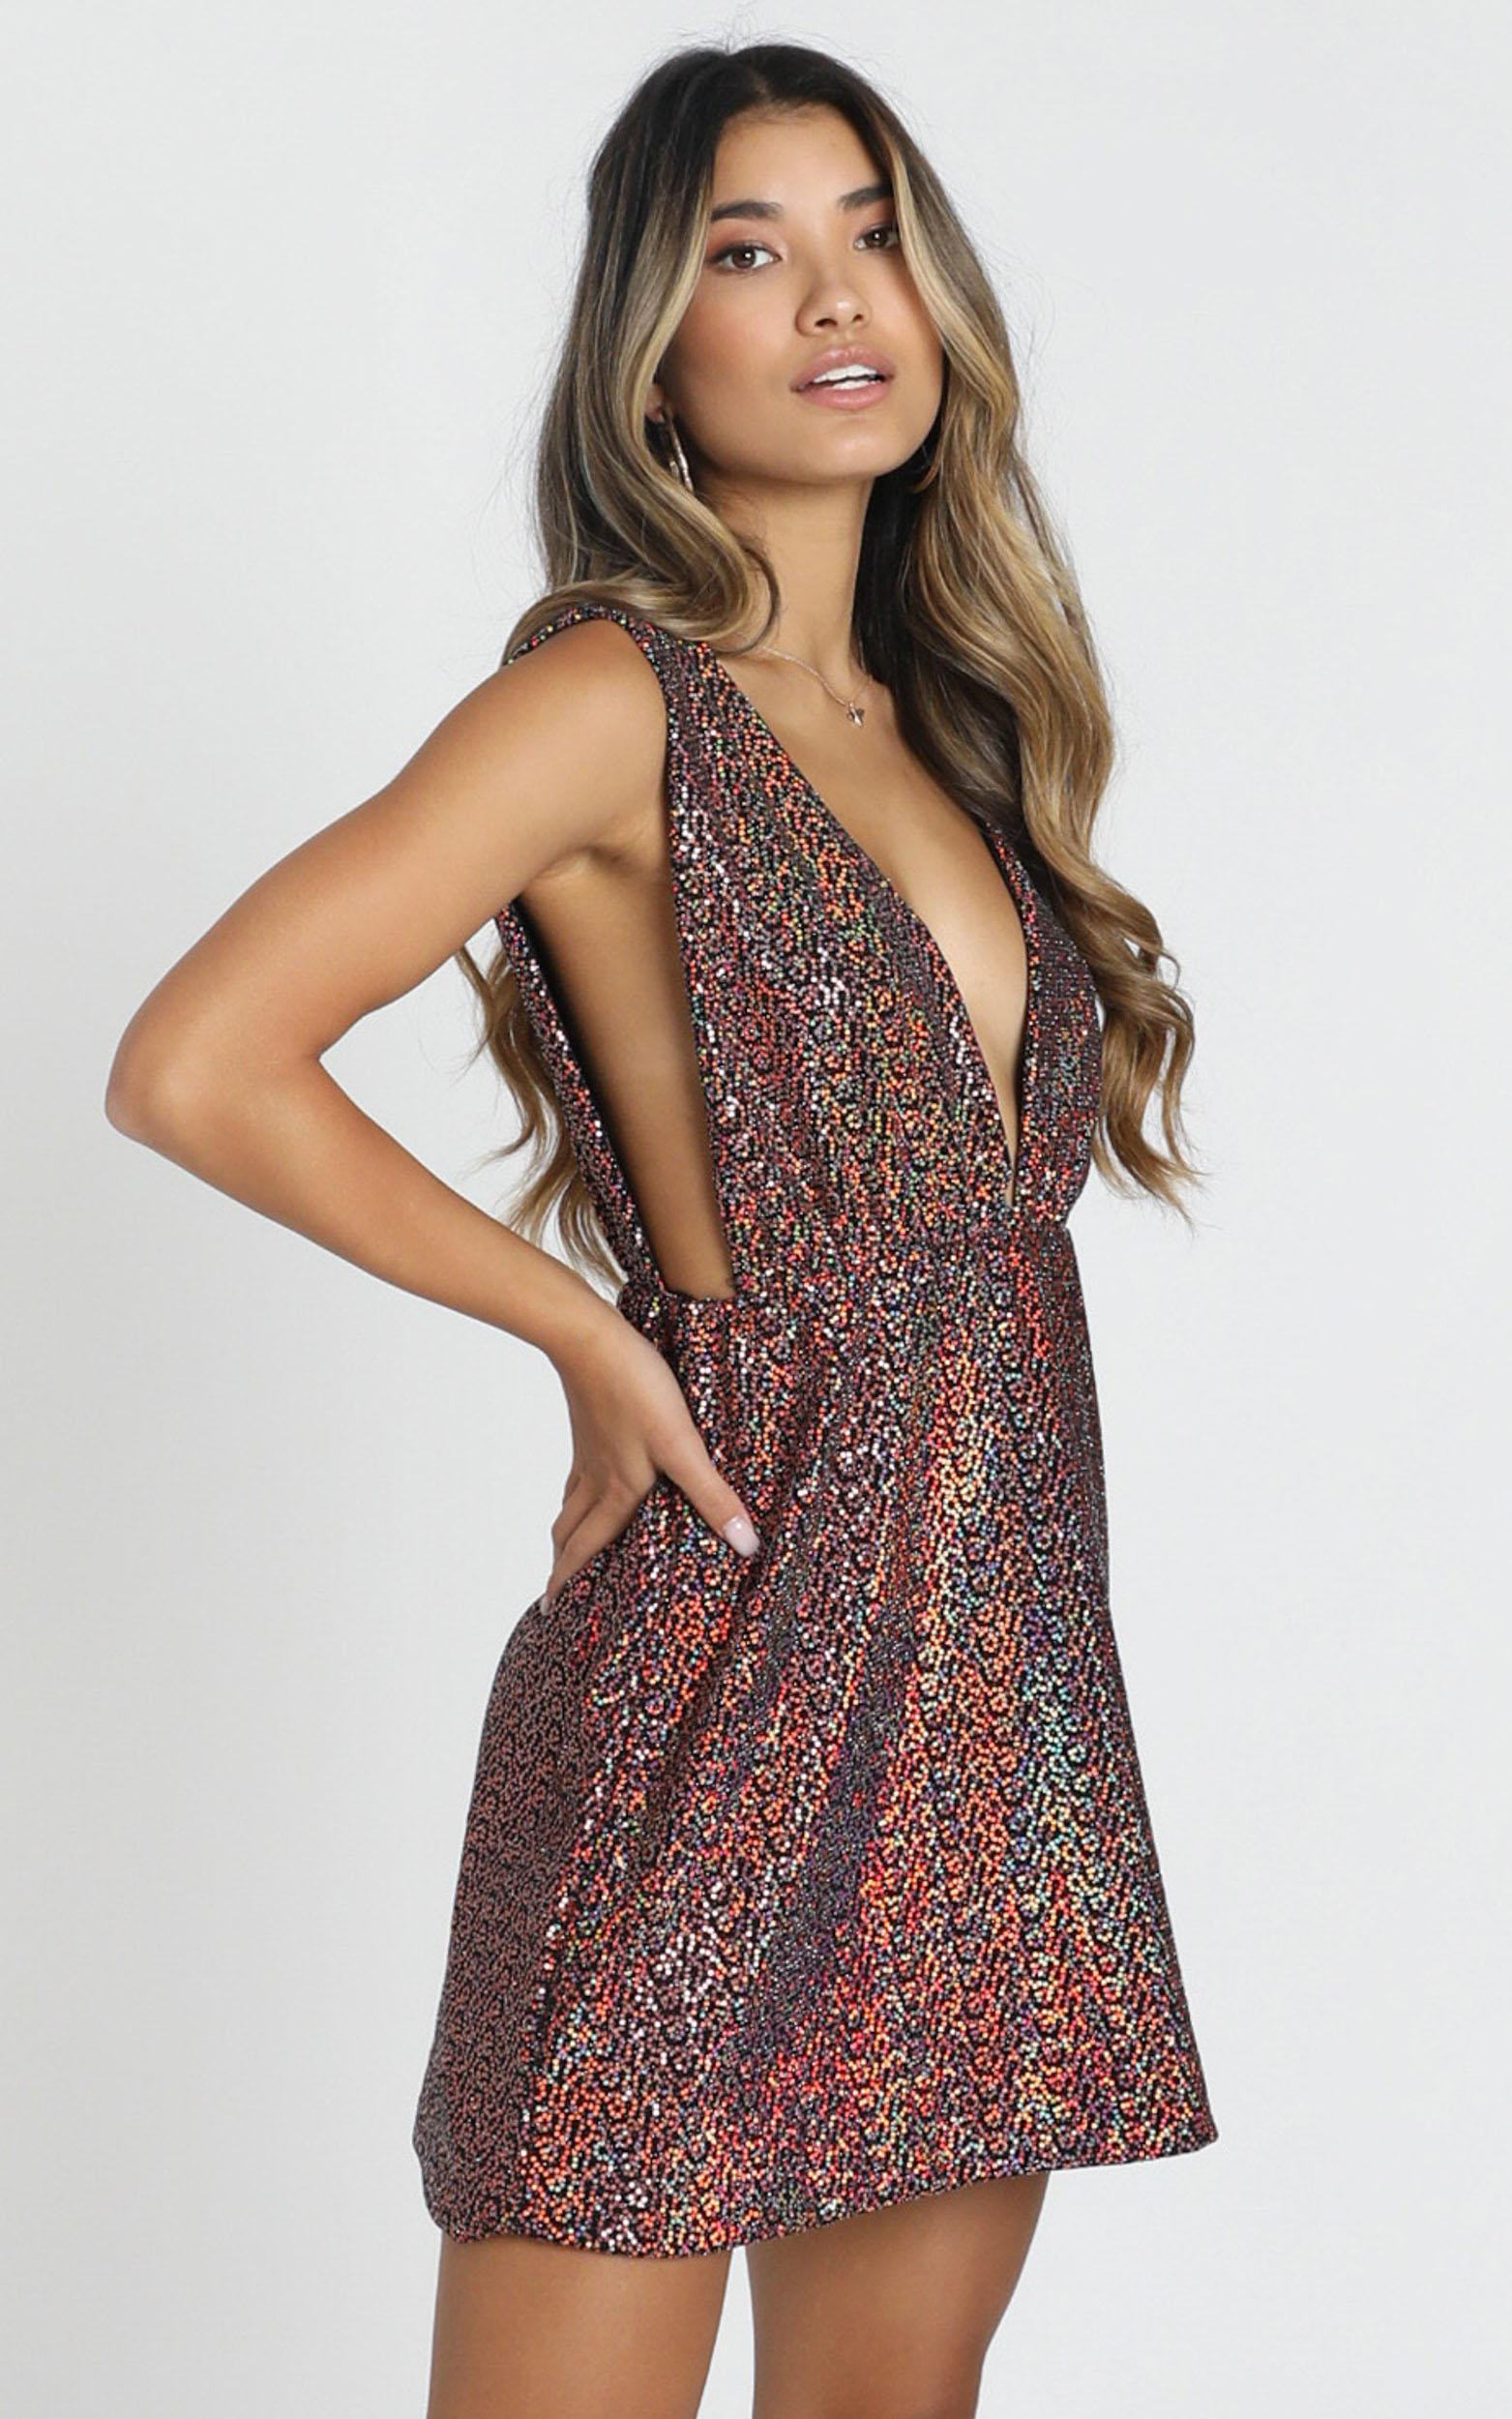 Cardiff Dress in Metallic Multi - 8 (S), Pink, hi-res image number null